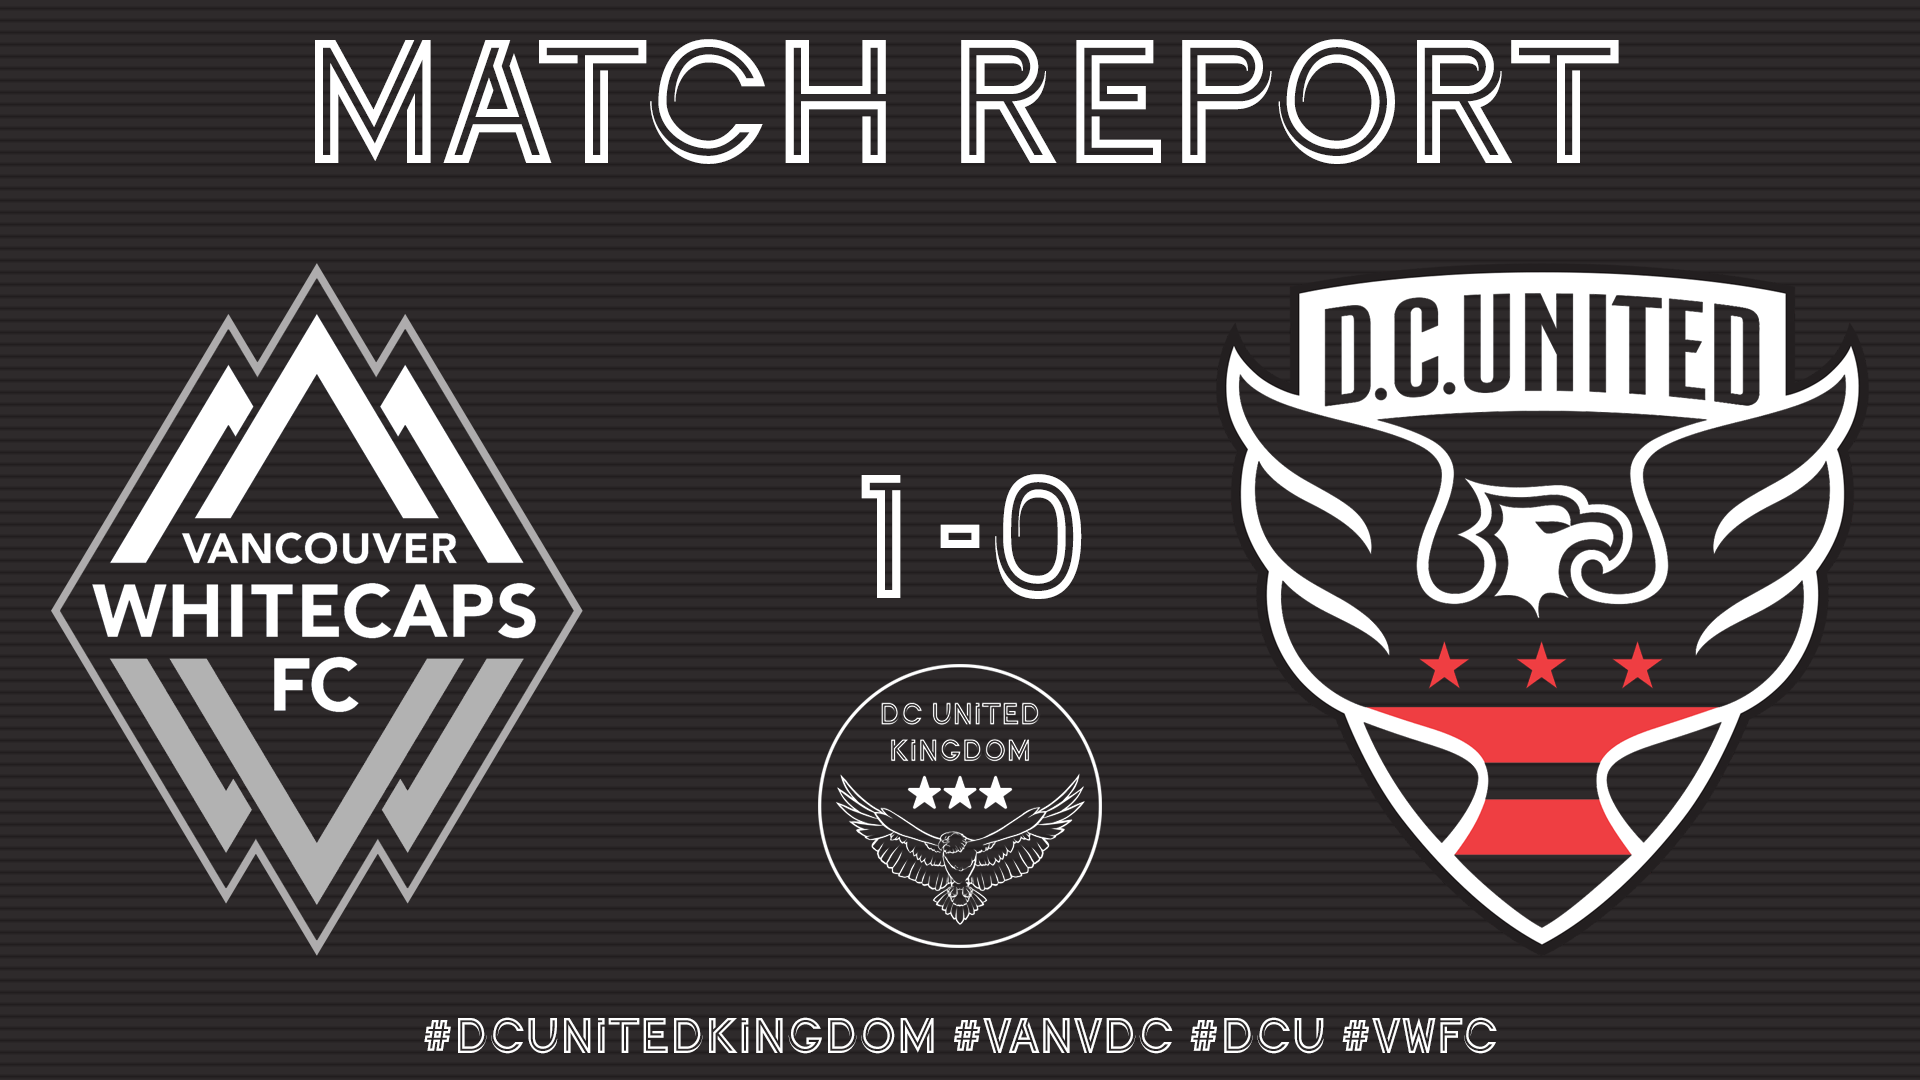 Match Report: Vancouver 1-0 DC United